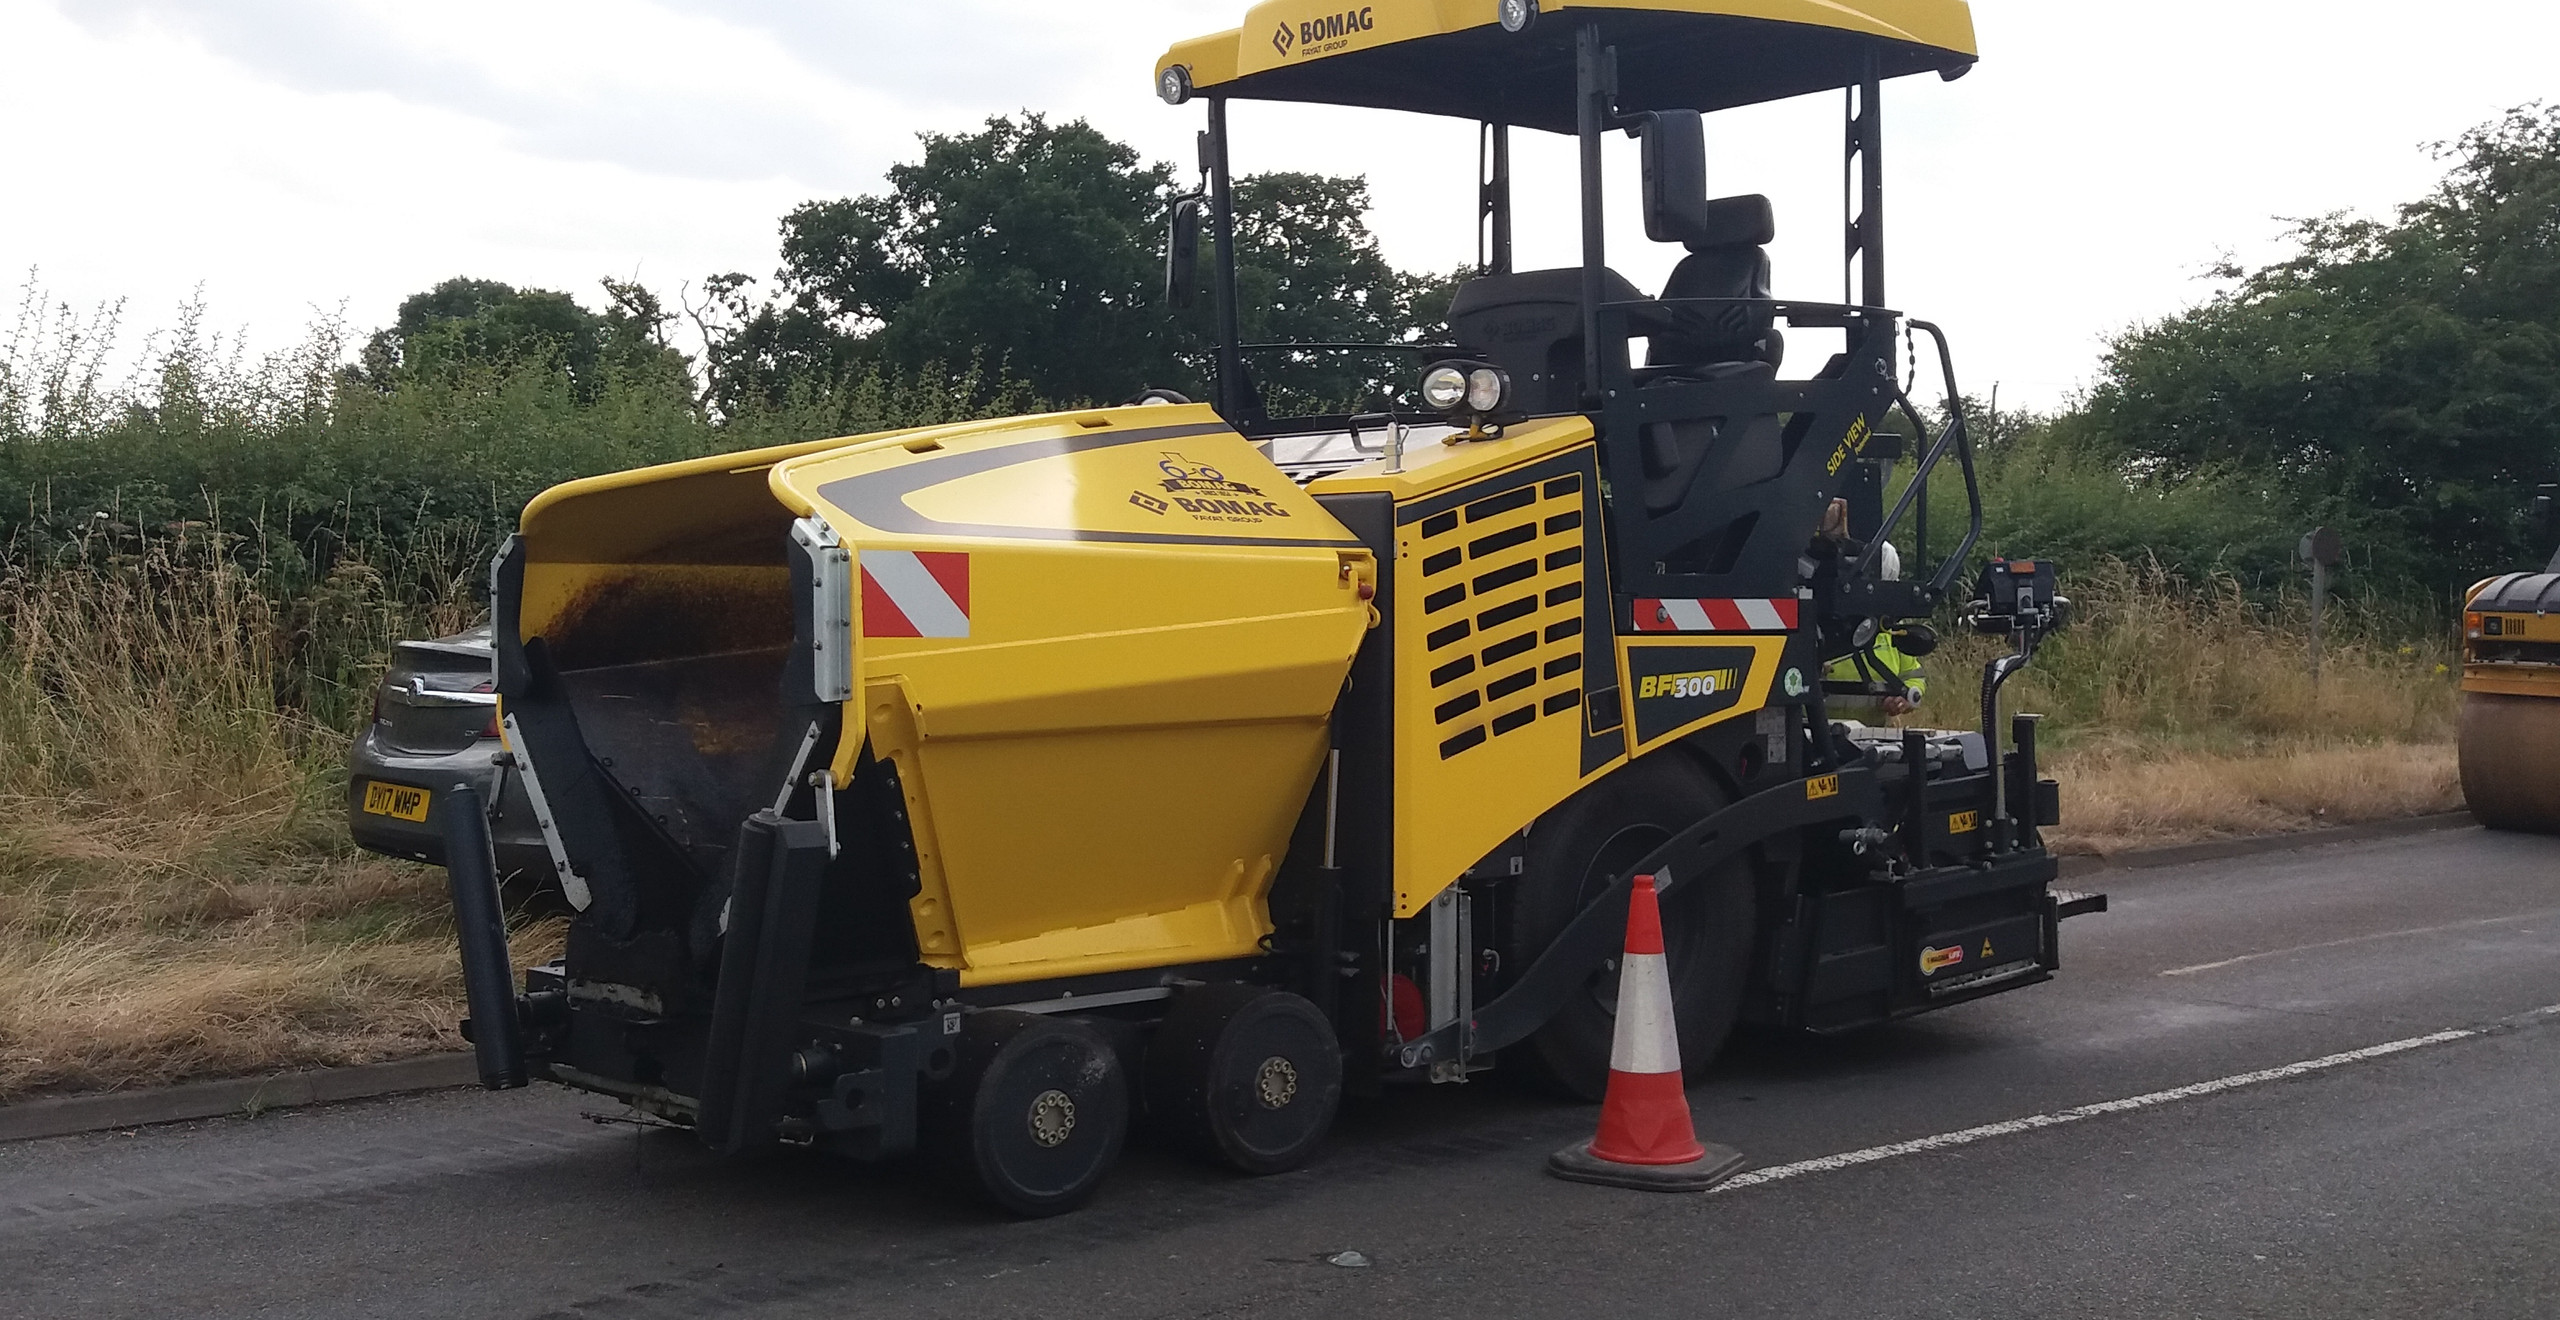 Hilton Main Construction crew working with paver in response to accident on A5 road west midlands